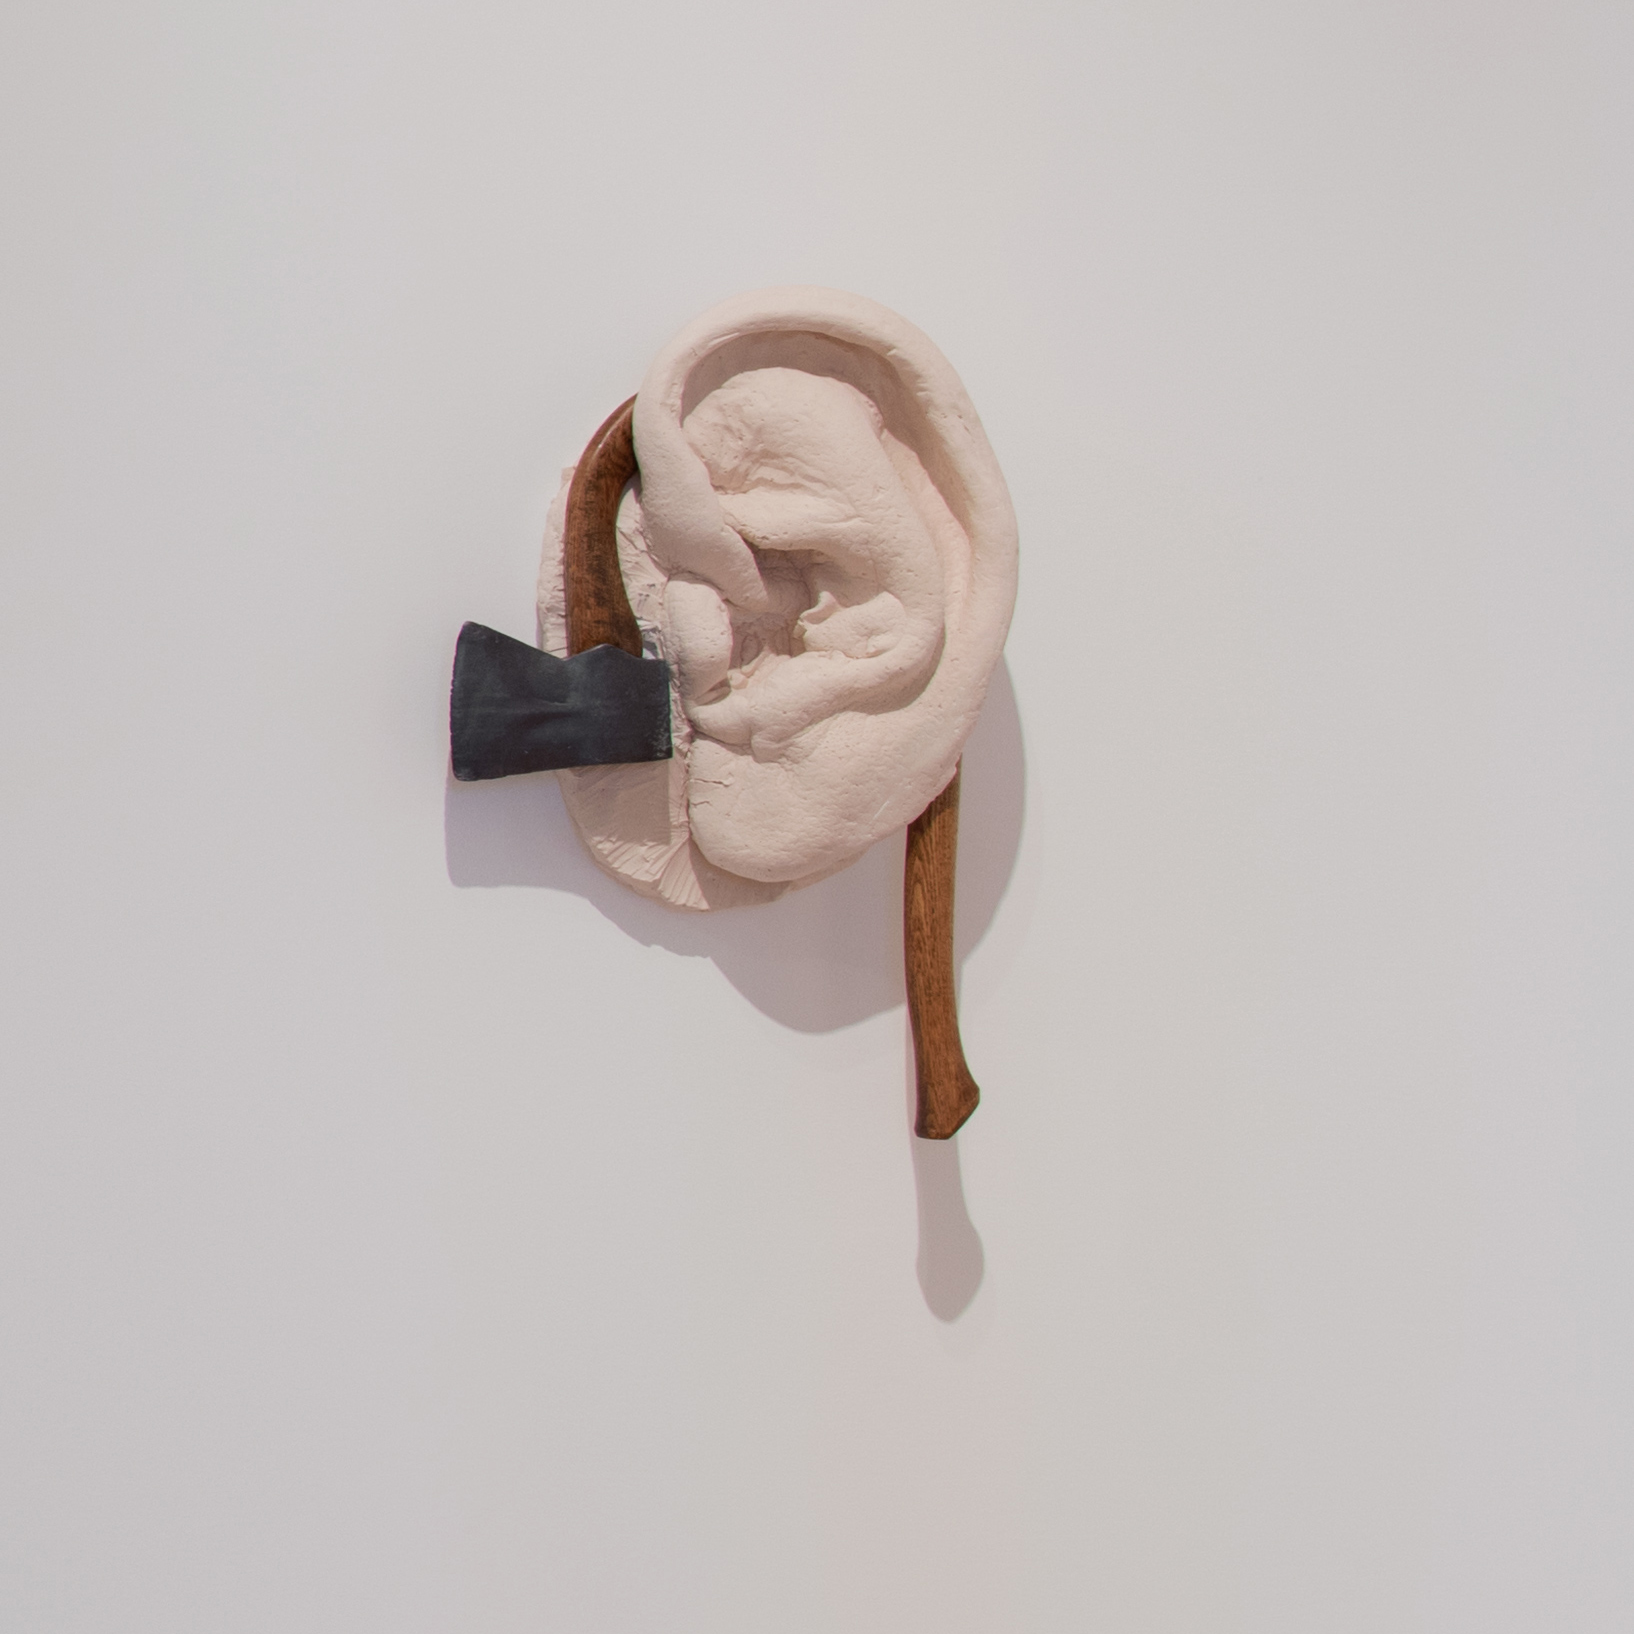 "Robert Gober, ""Untitled, 2012."" Lead,wood, cast gypsum polymer, 28 1/2 x 18 x 7 inches. Hammer Museum, Los Angeles. Promised gift of Brenda R. Potter."